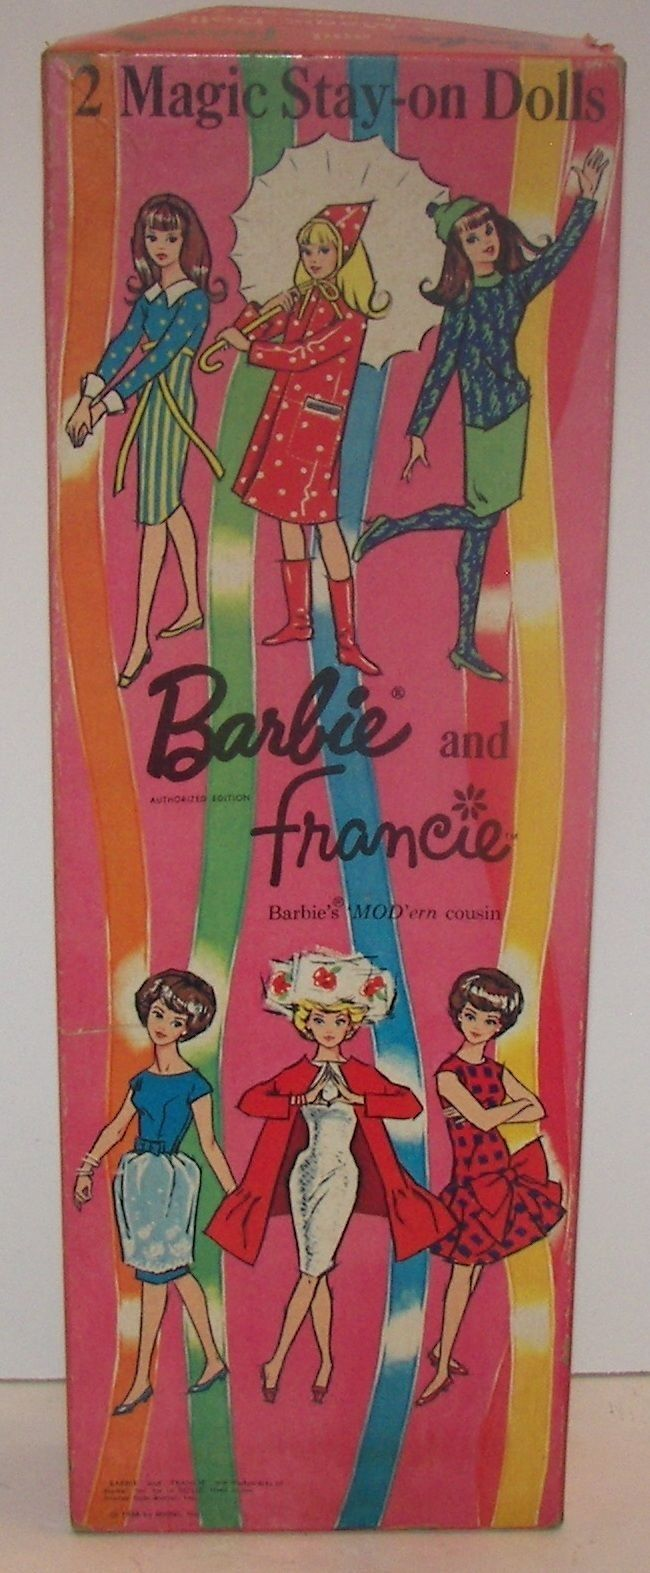 Whitman hot wheels coloring book - Whitman Barbie And Francie Magic Stay On Dolls